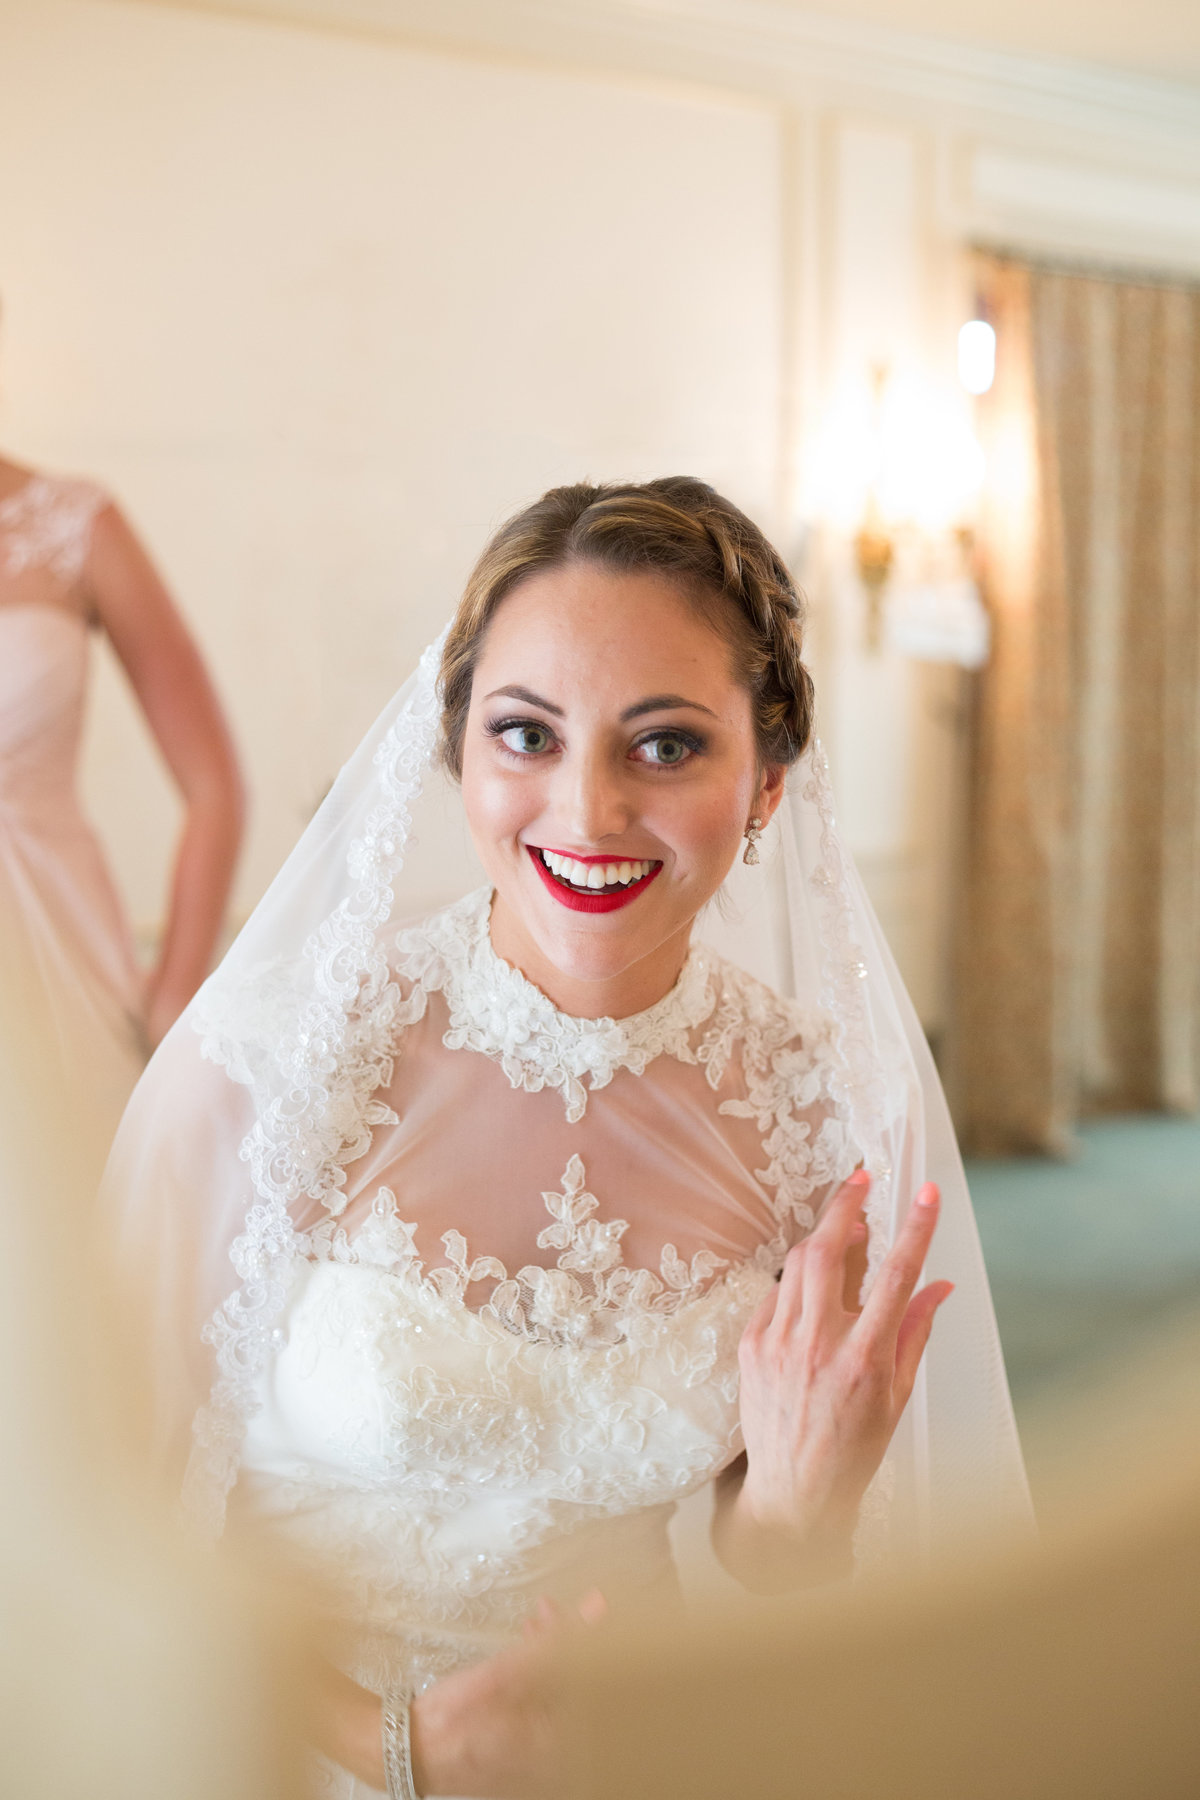 bride-getting-ready-vintage-inspired-wedding-halley-lutz-photography